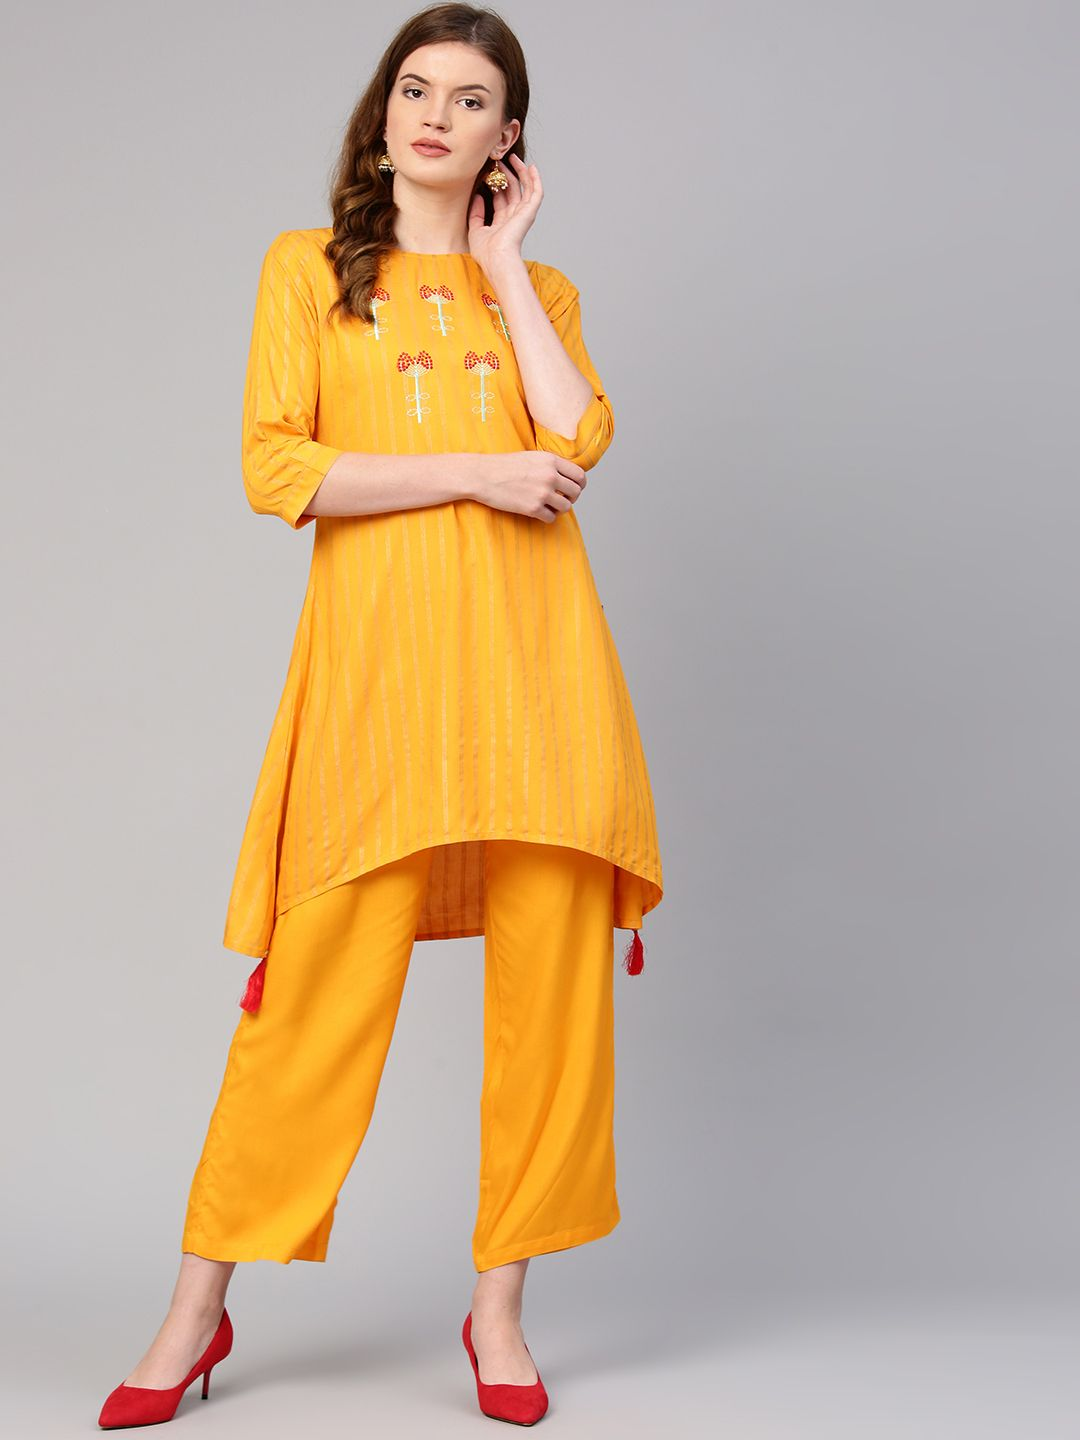 Striped Printed Yellow Jacket with Top and Palazzo India Pakistani Women/'s Set